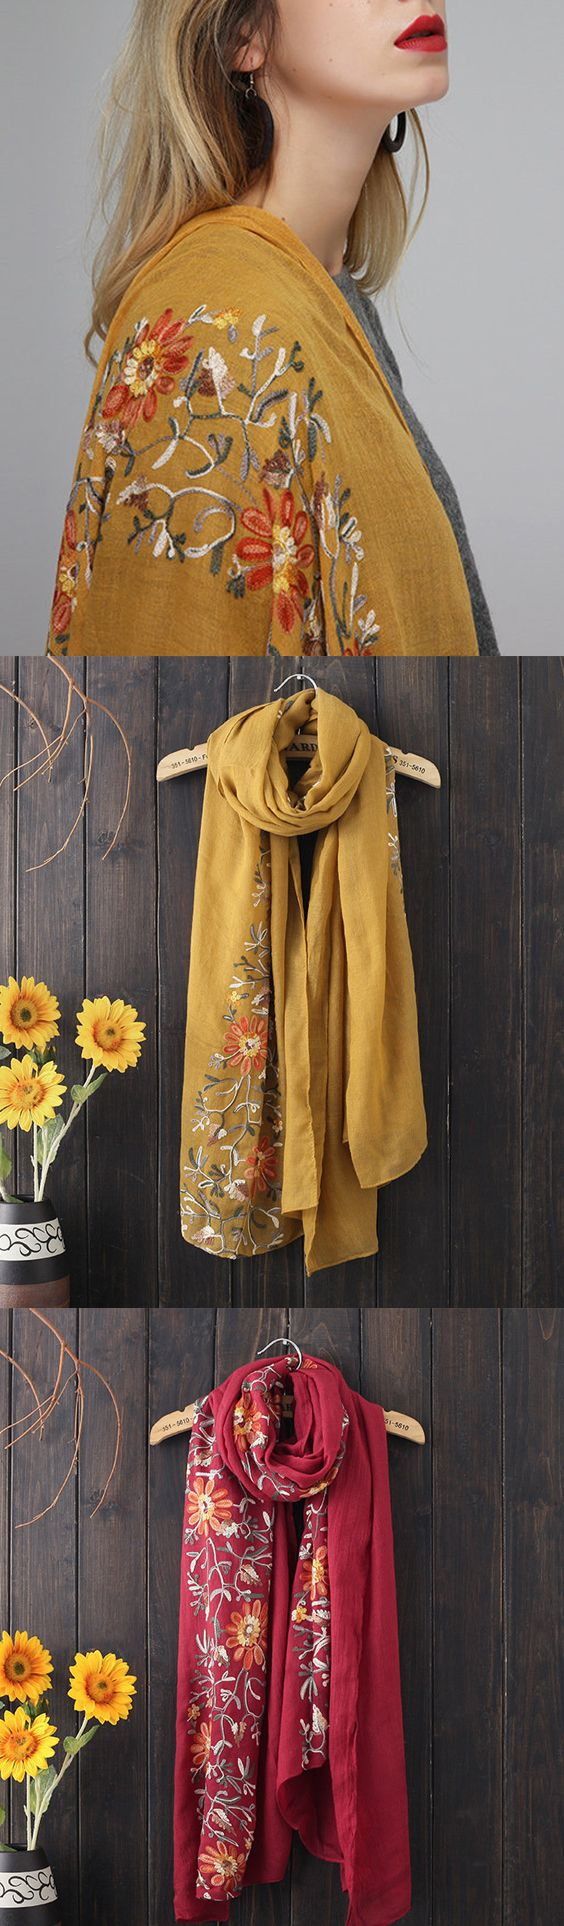 Women Ethnic Style Embroidered Cotton Scarf Shawl Plus Size Casual Warm Breathable Scarves